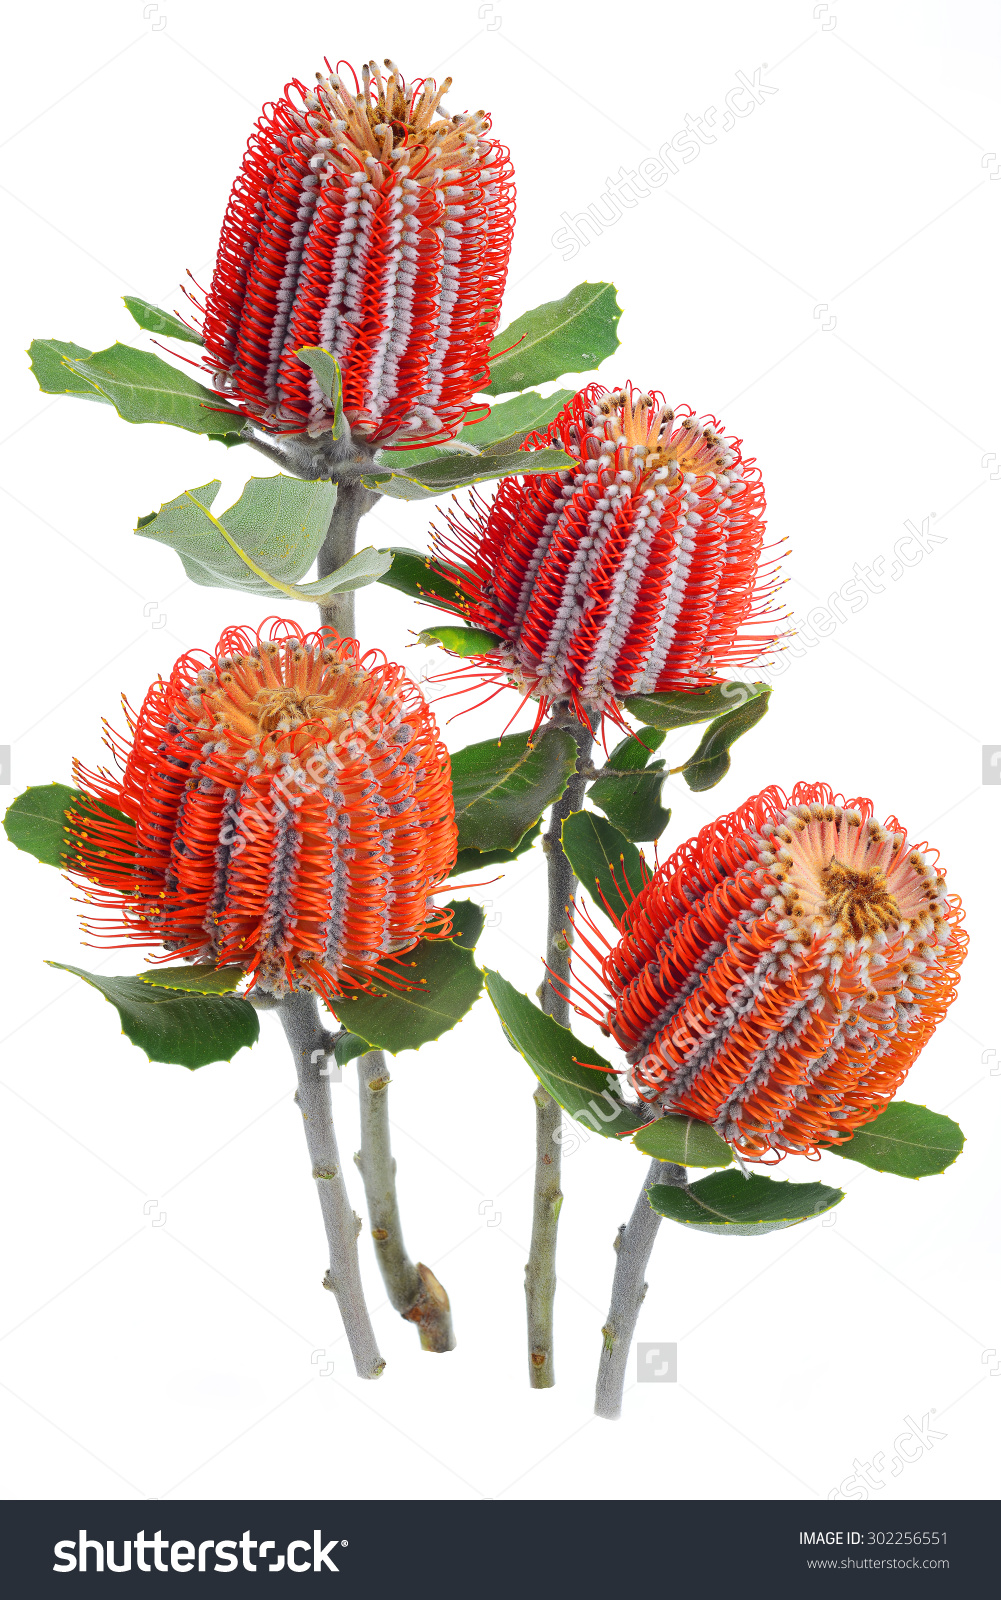 Closed Banksia Coccinea Flowers Leaves Isolated Stock Photo.